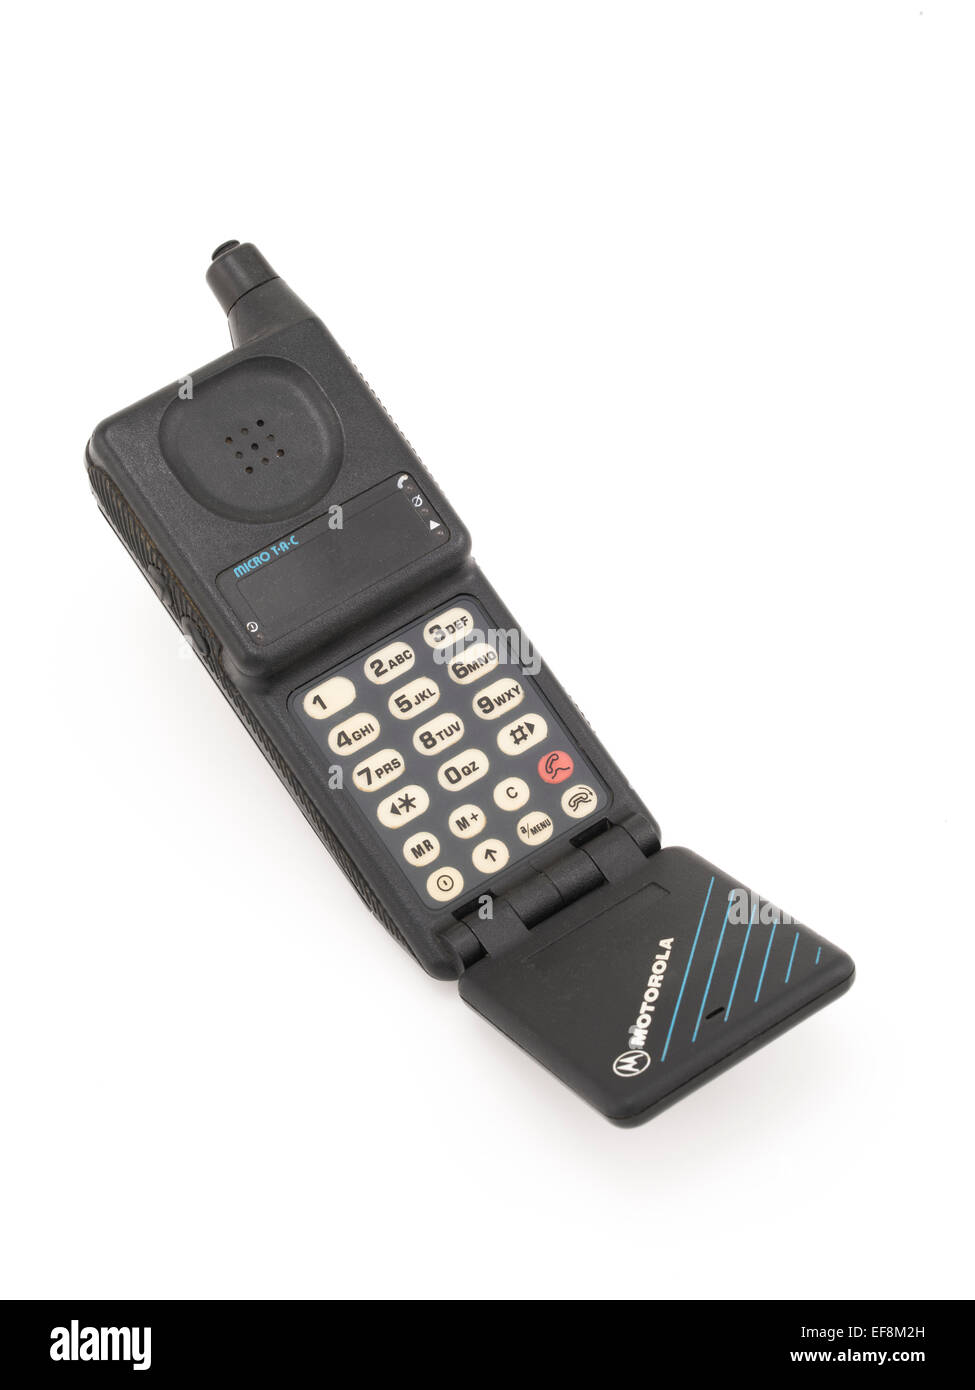 Motorola MicroTAC 9800X pocket cellular telephone. Analog 1989 flip design phone. - Stock Image